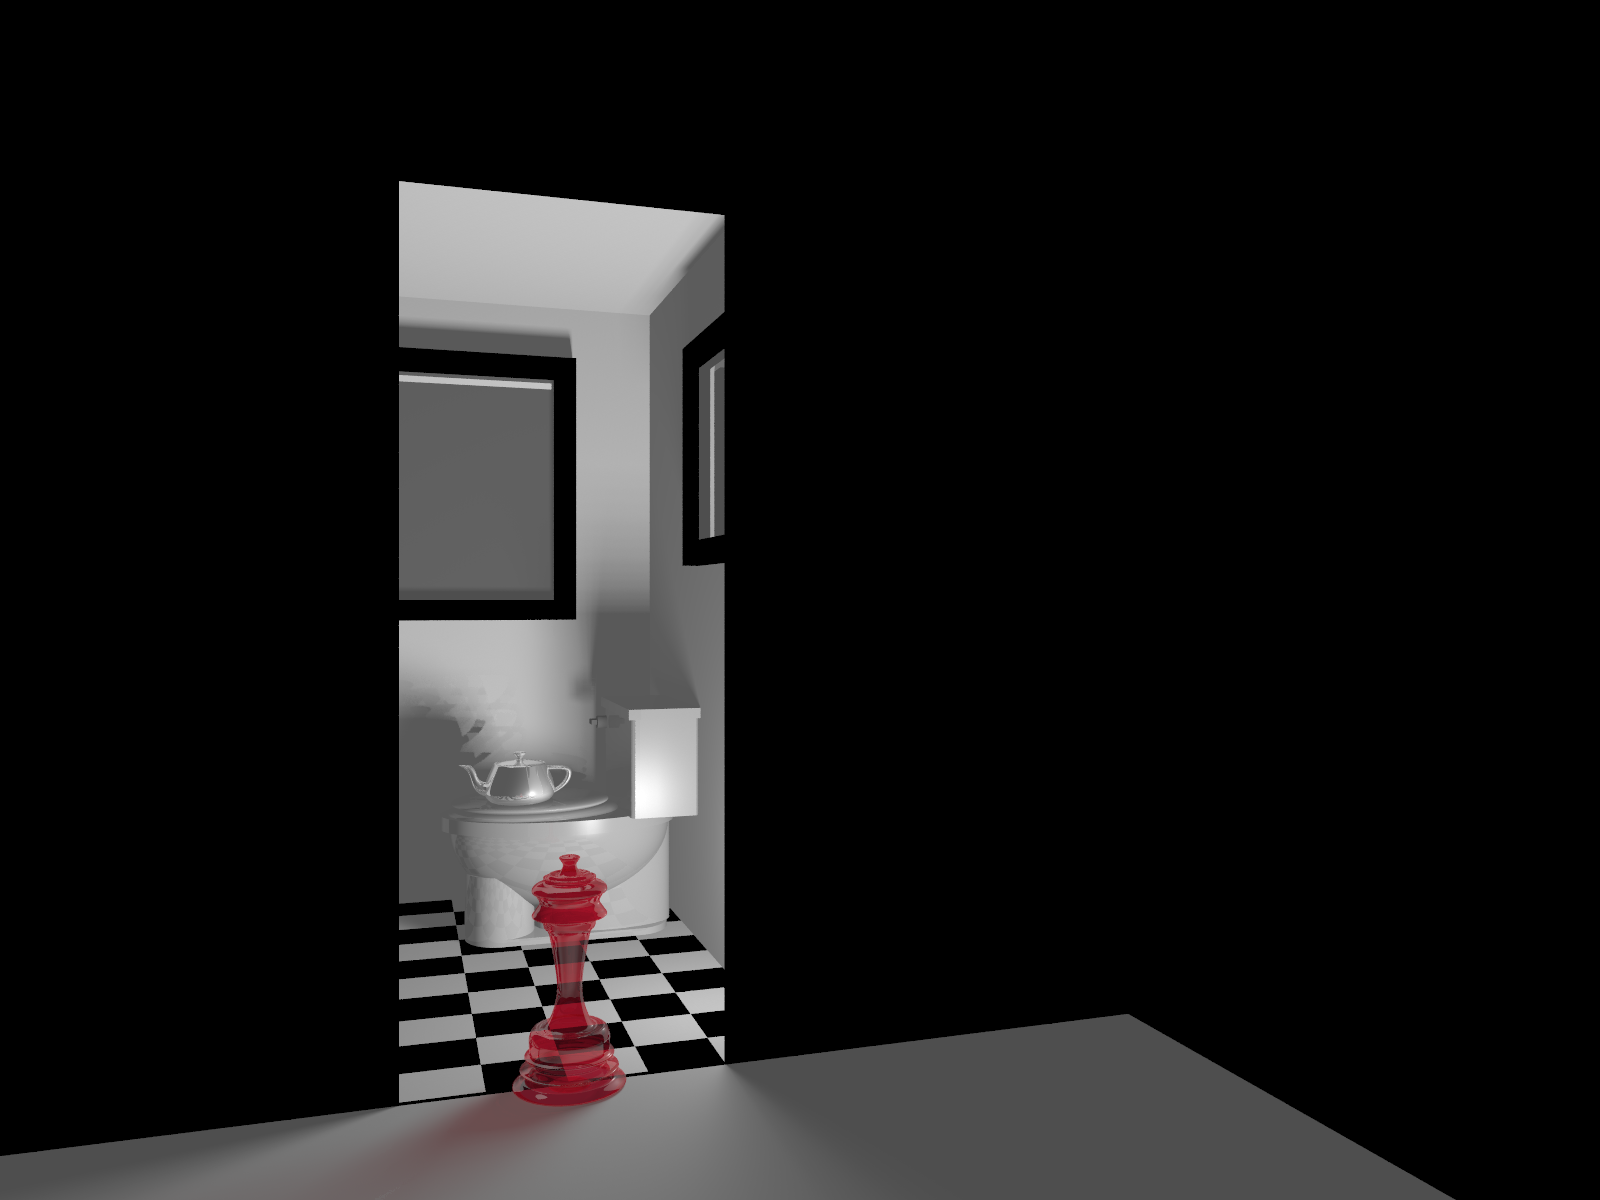 Raytraced Toilet